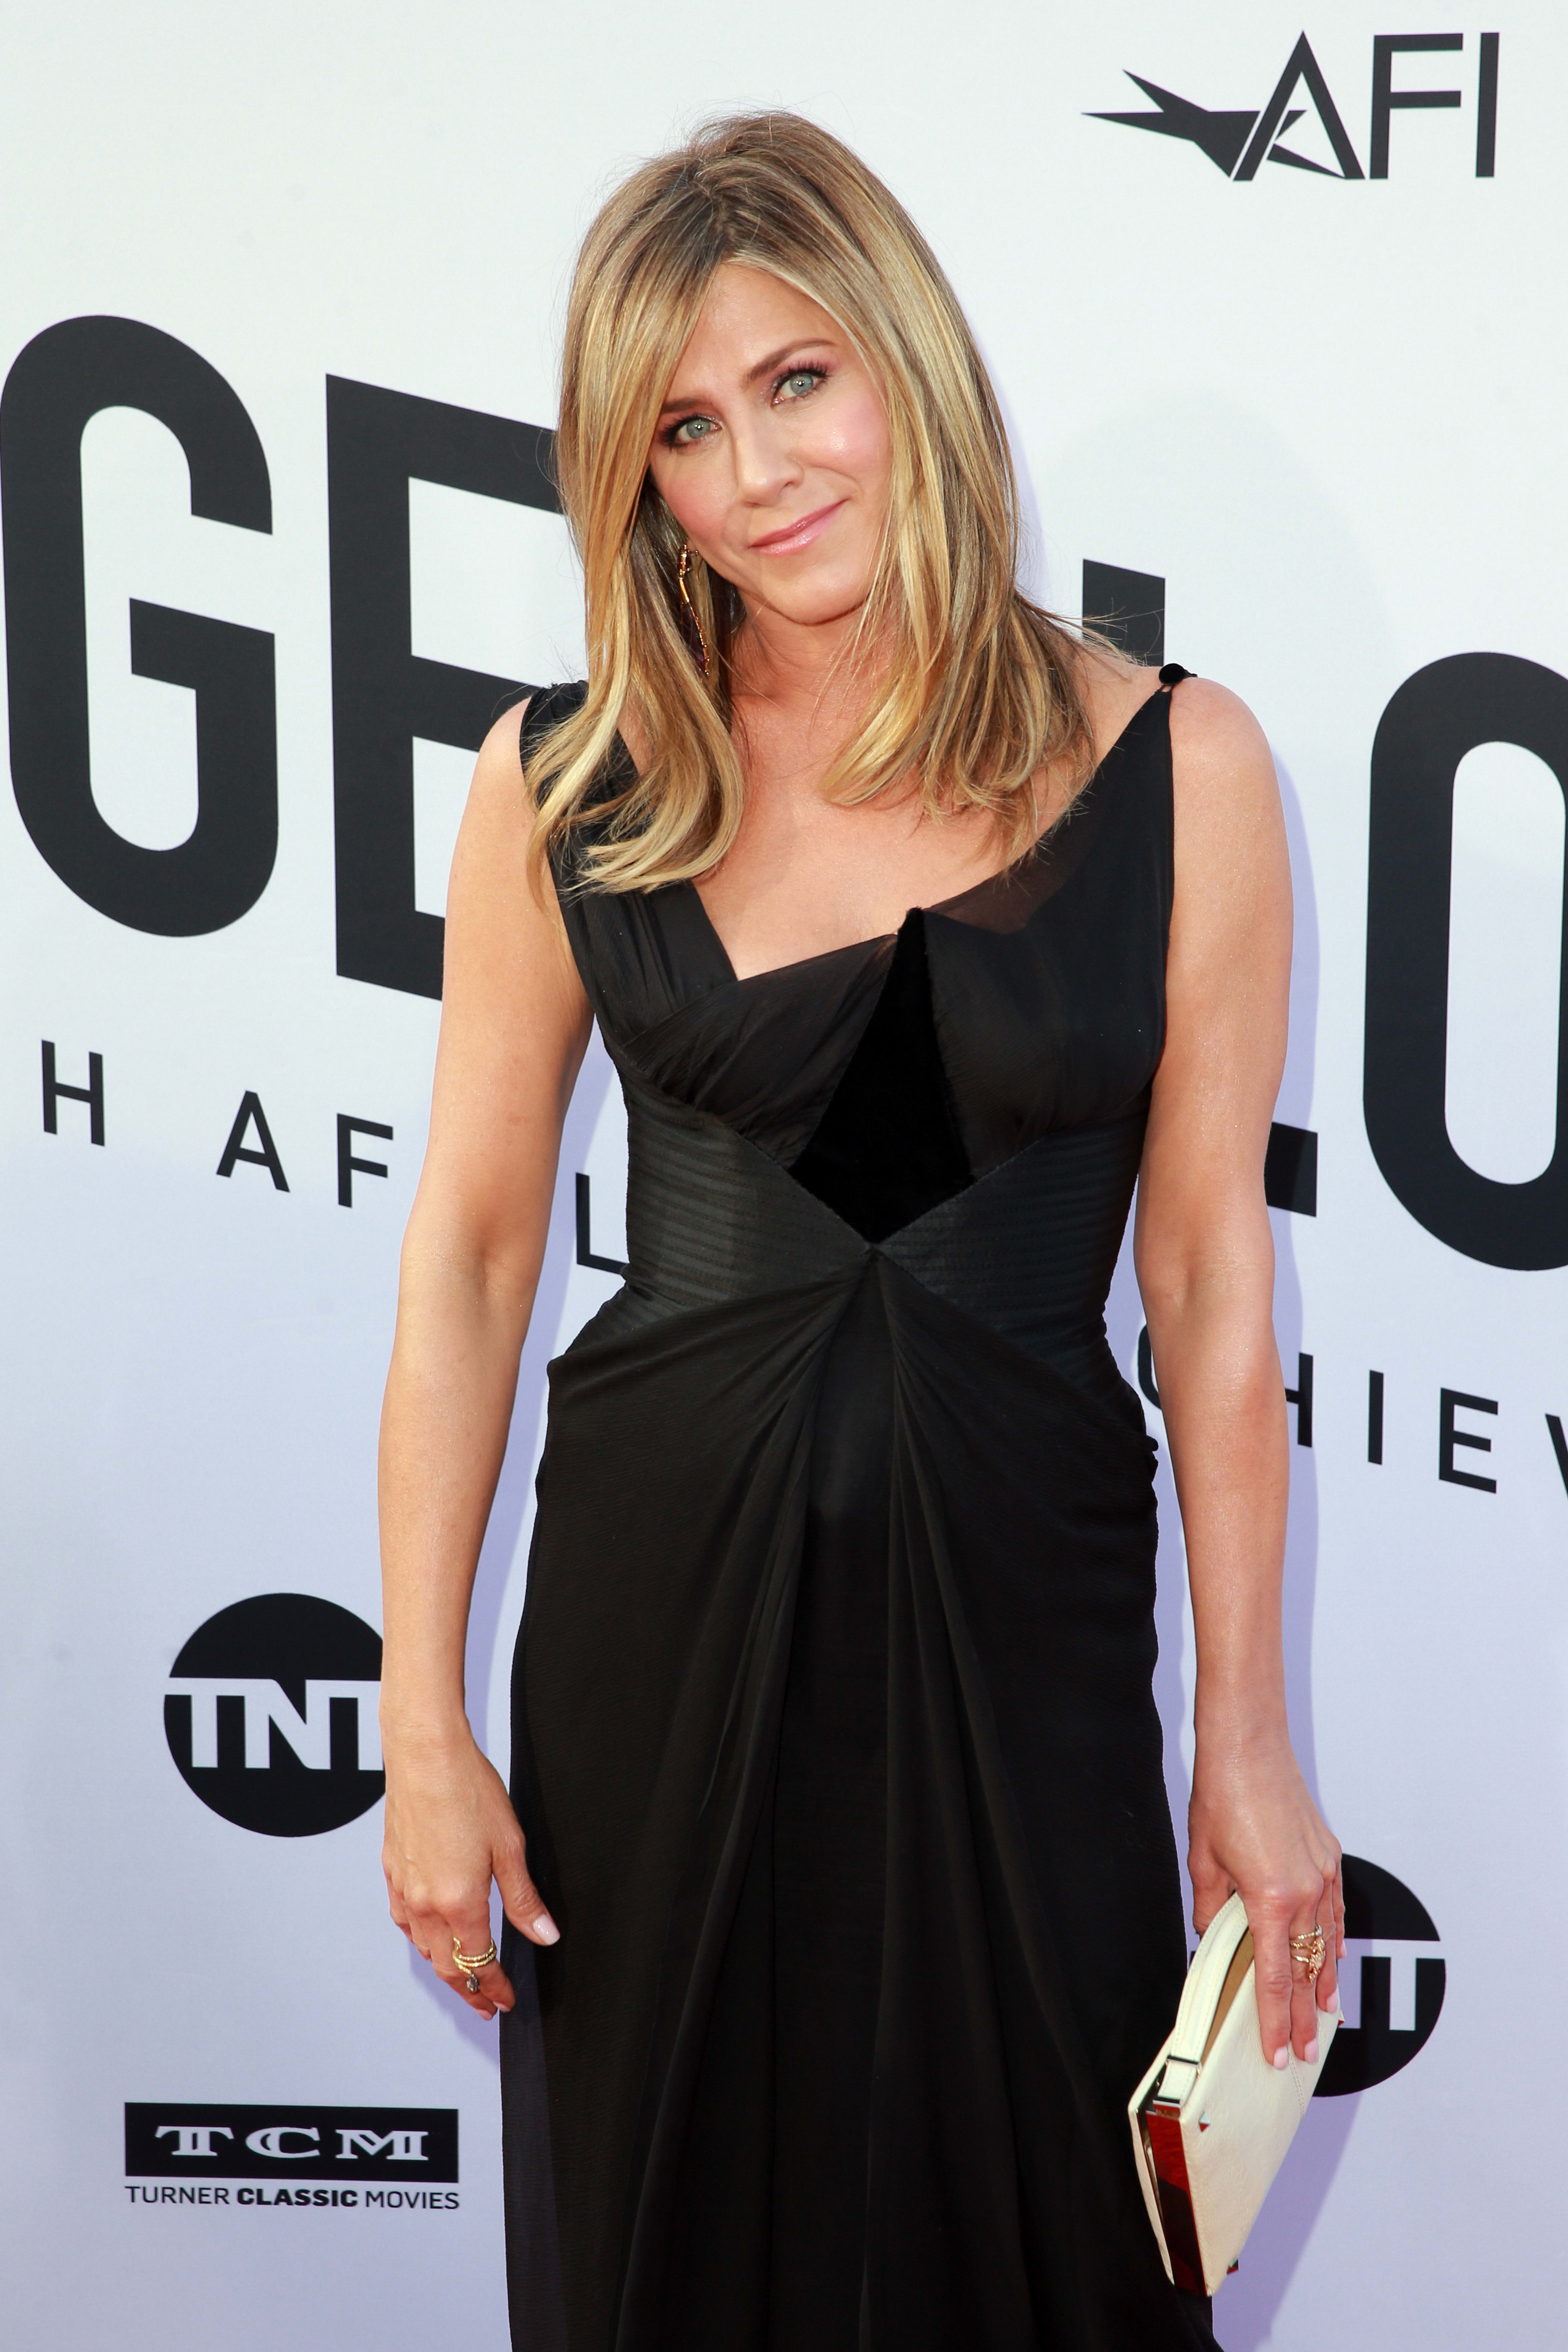 Jennifer Aniston Who Is She Dating Now The Hollywood Gossip